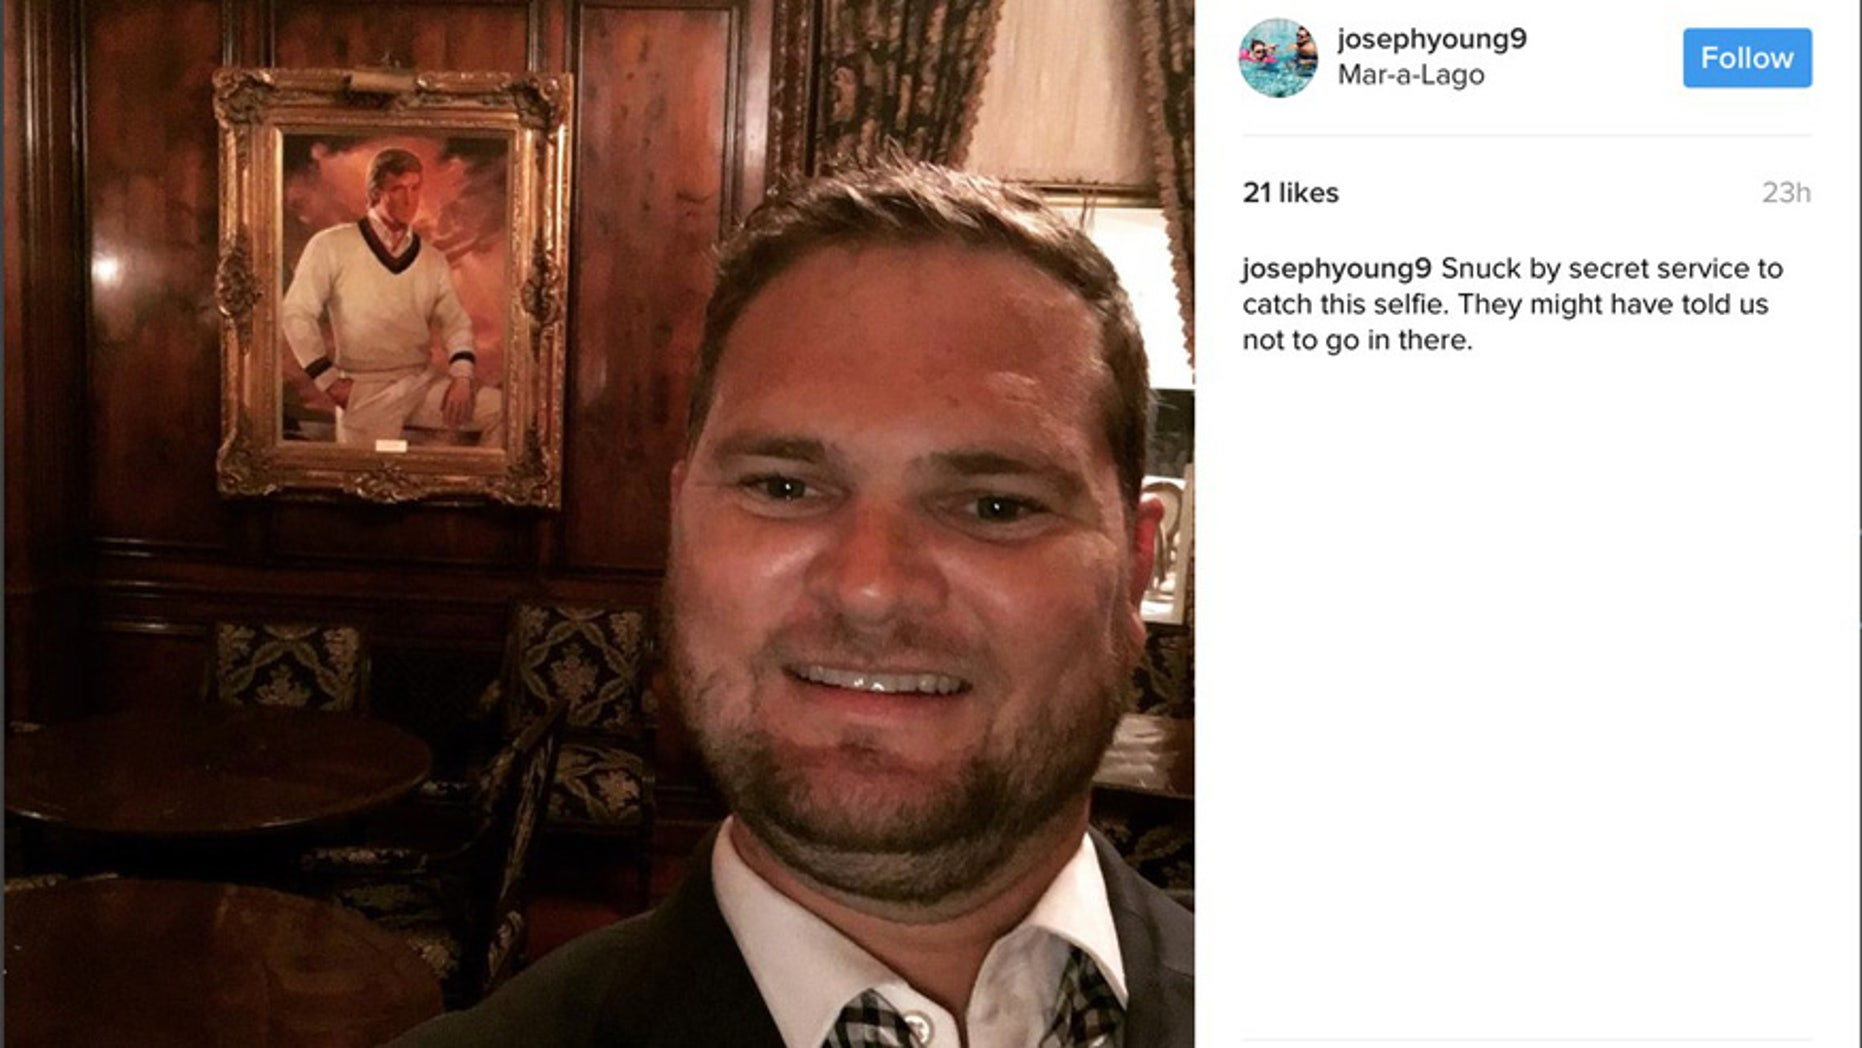 Joseph Young posted this selfie from inside Trump's Mar-a-Lago private study.